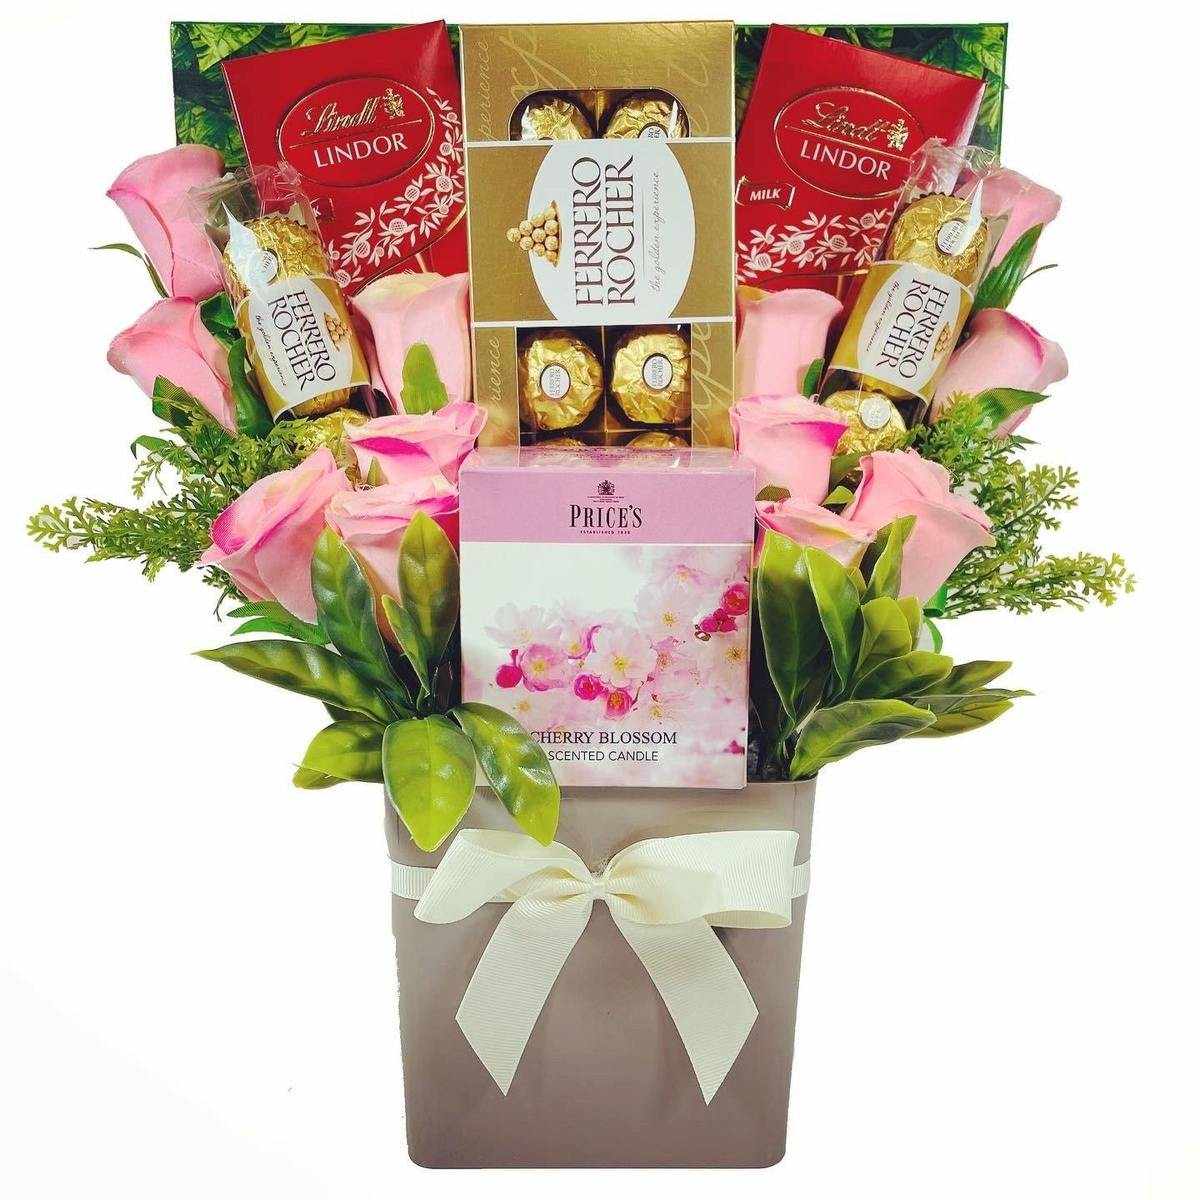 The Price's Boxed Candle Bouquet - Pink